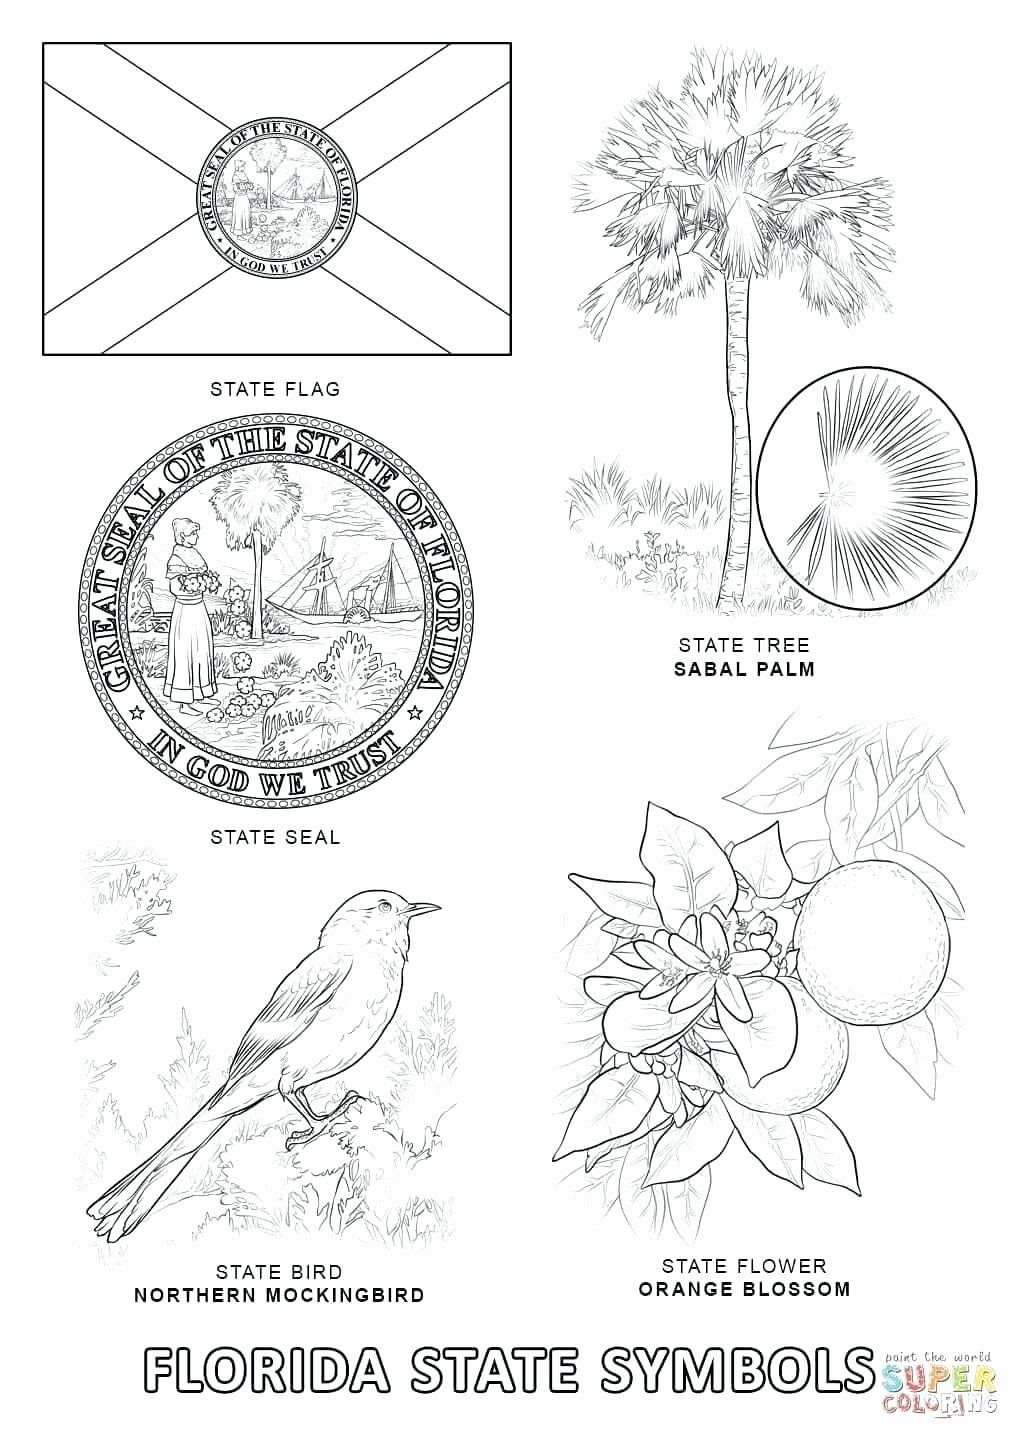 Alaska State Bird Coloring Page Awesome Virginia State Flag Coloring Page Micronsheet Gambar Justin Bieber Virginia